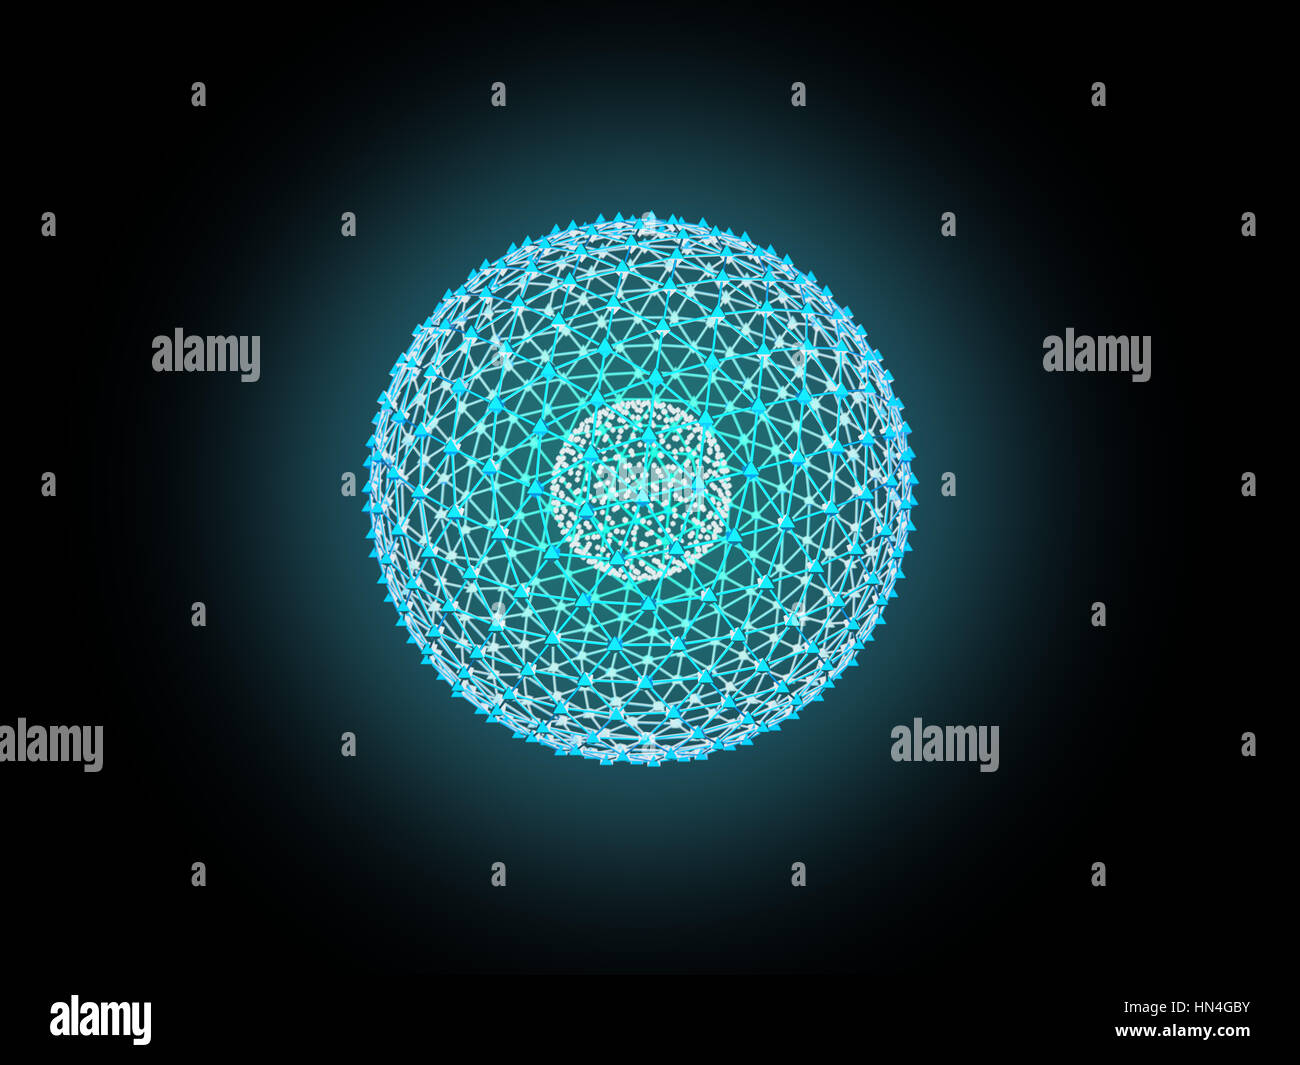 Nucleus of Atom Nuclear explode ray radiation light science 3D Illustration abstract blur background. - Stock Image